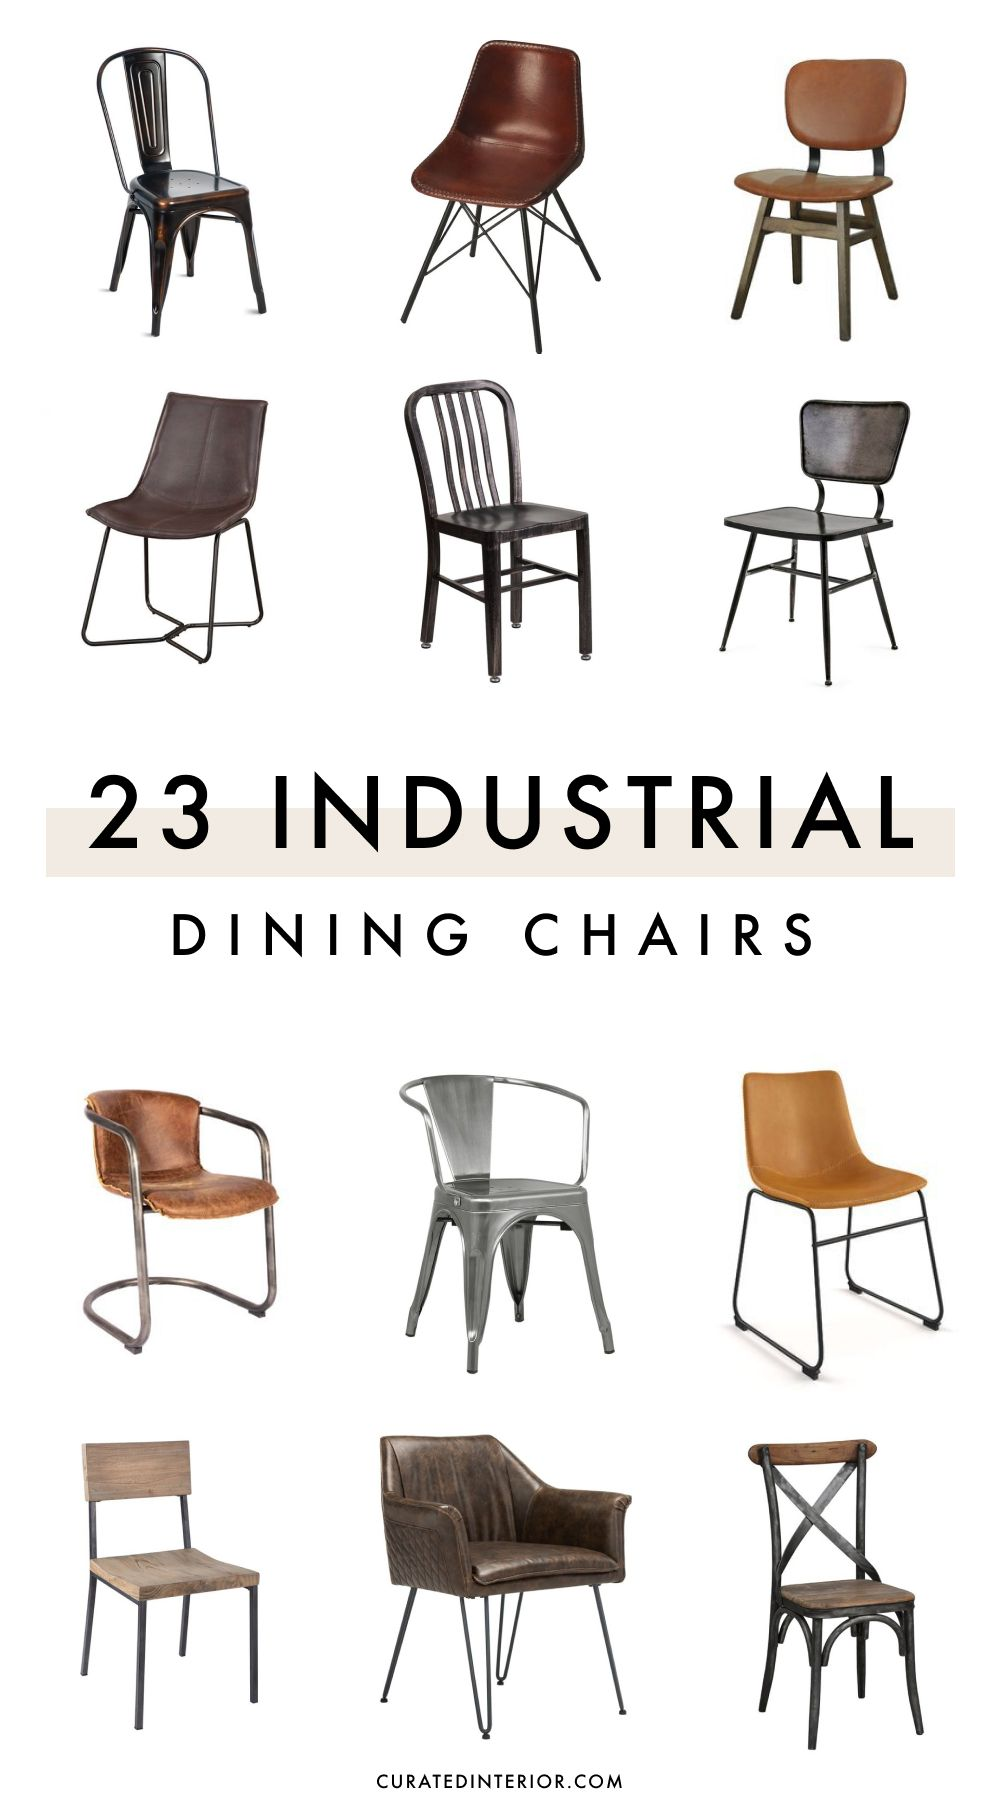 23 Industrial Dining Chairs Made of Metal and Wood